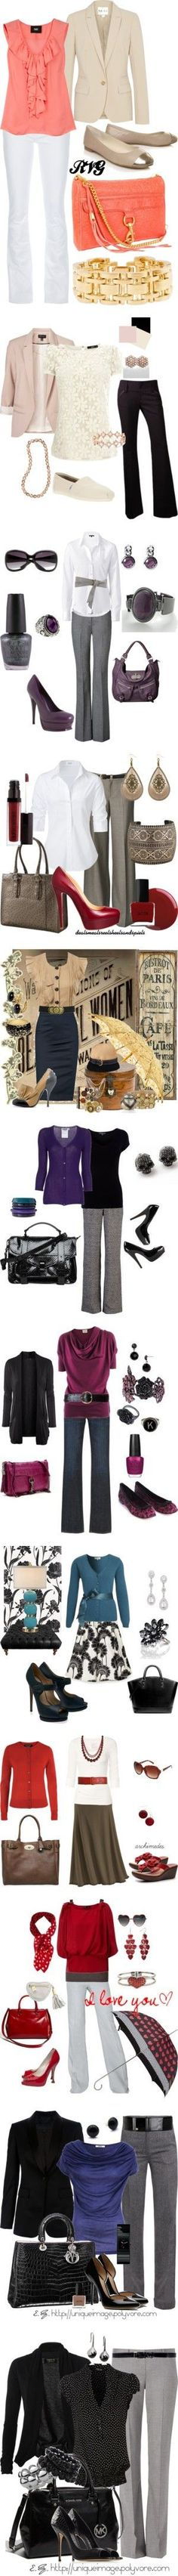 Great work outfits for fall! However, the outfits doesn't have to be color matching. For example, you could wear yellow shoes with a purple top or a red top easily!